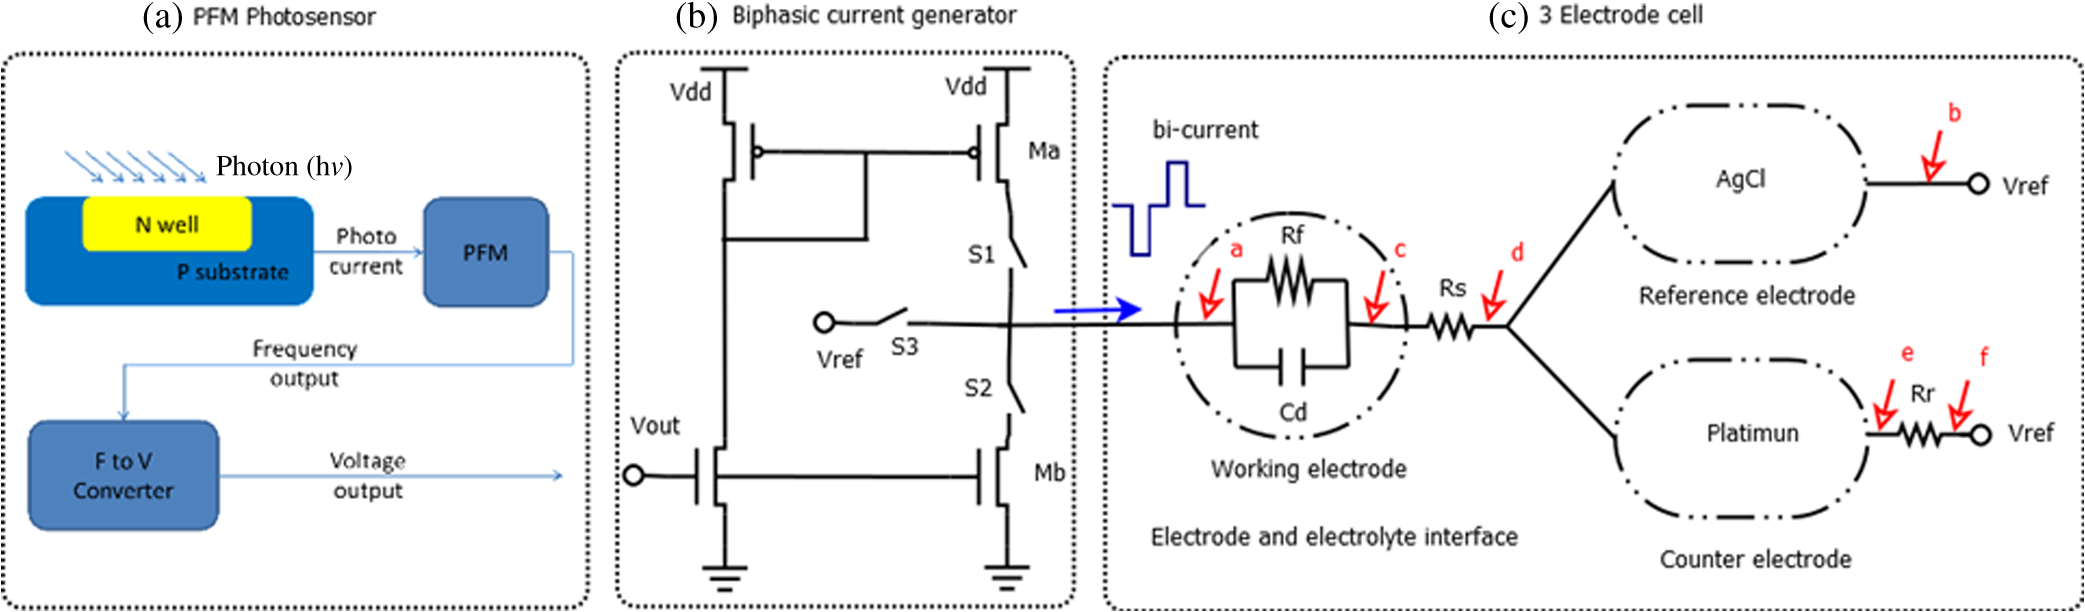 Flexible High Density Microphotodiode Array With Integrated Current Generator Diagram Moreover R Circuit Fig 5 Schematic